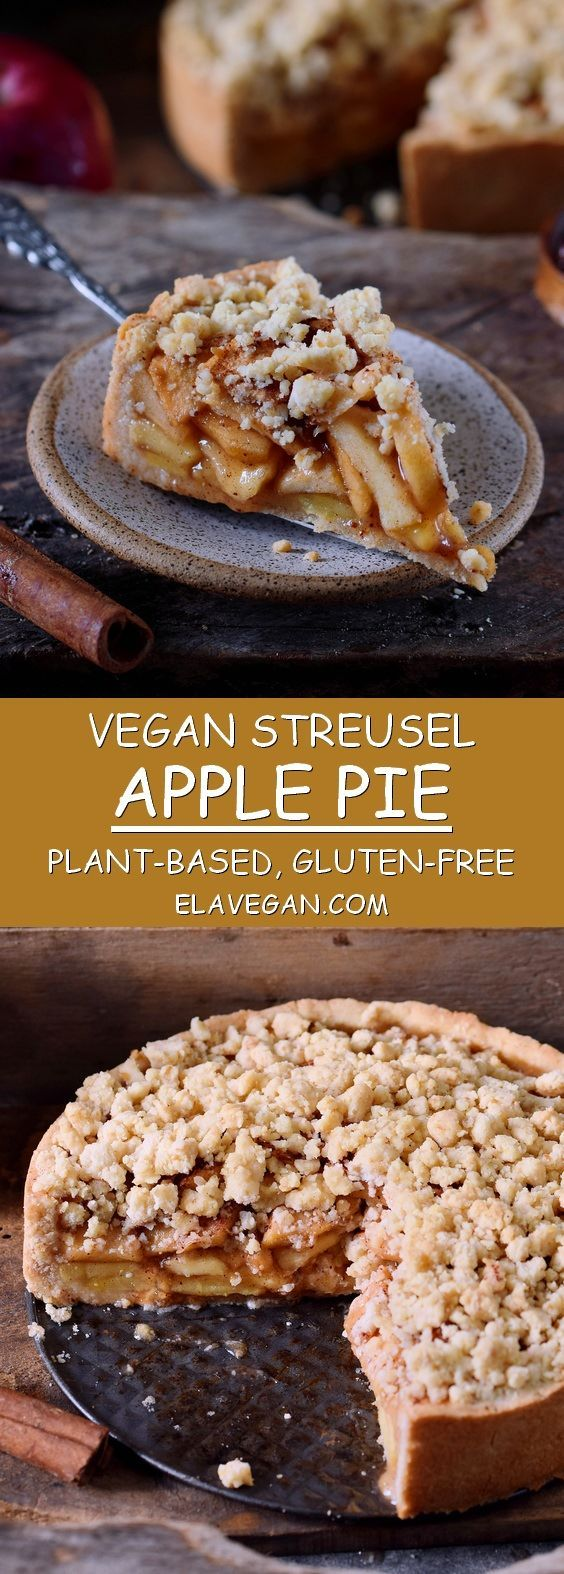 This Vegan Apple Pie With Streusel Is The Perfect Fall Dessert